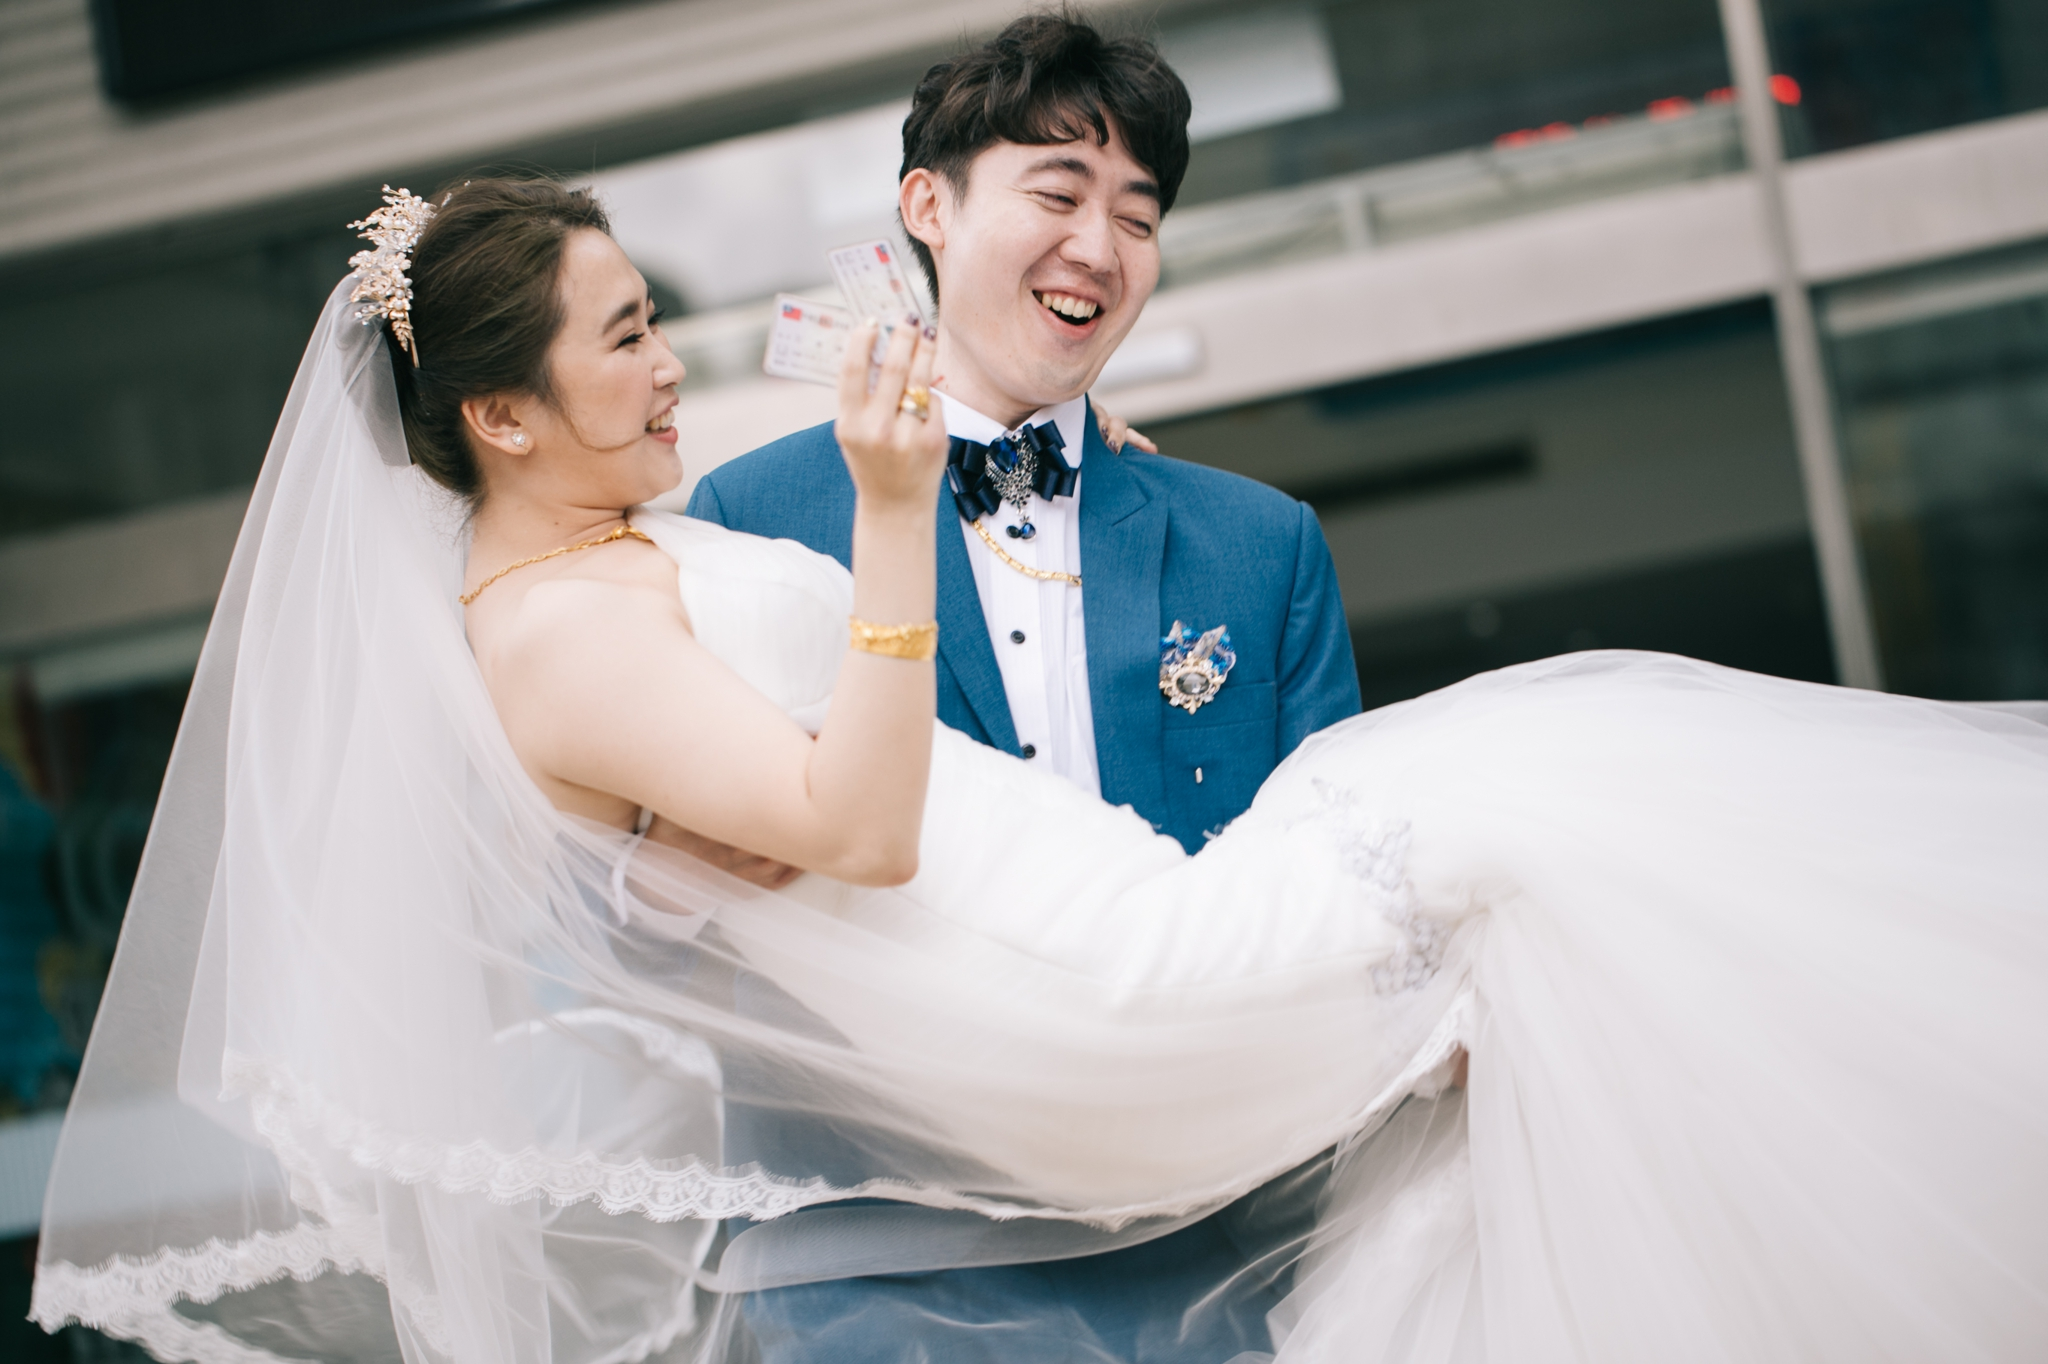 Keddy+Richard-wedding-新莊頤品飯店-152.jpg